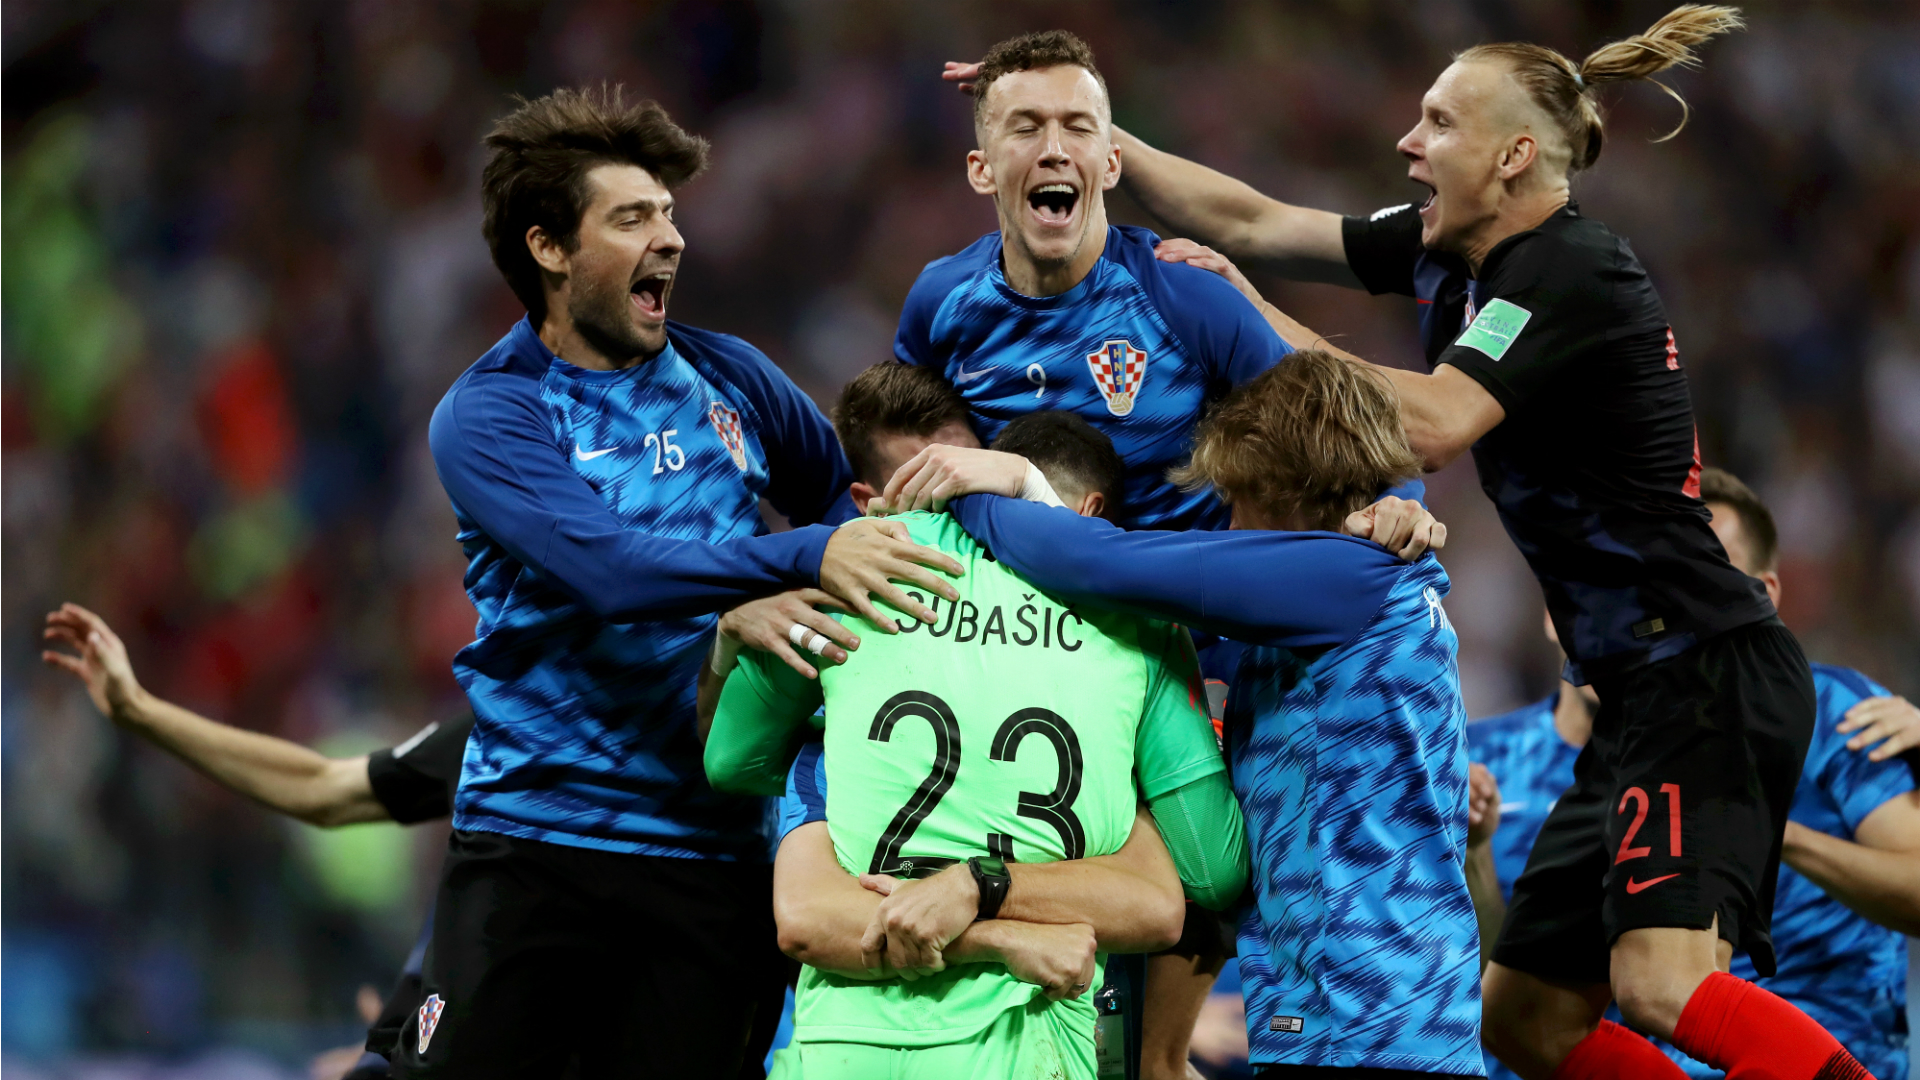 corluka perisic vida subasic croatia World Cup 01072018